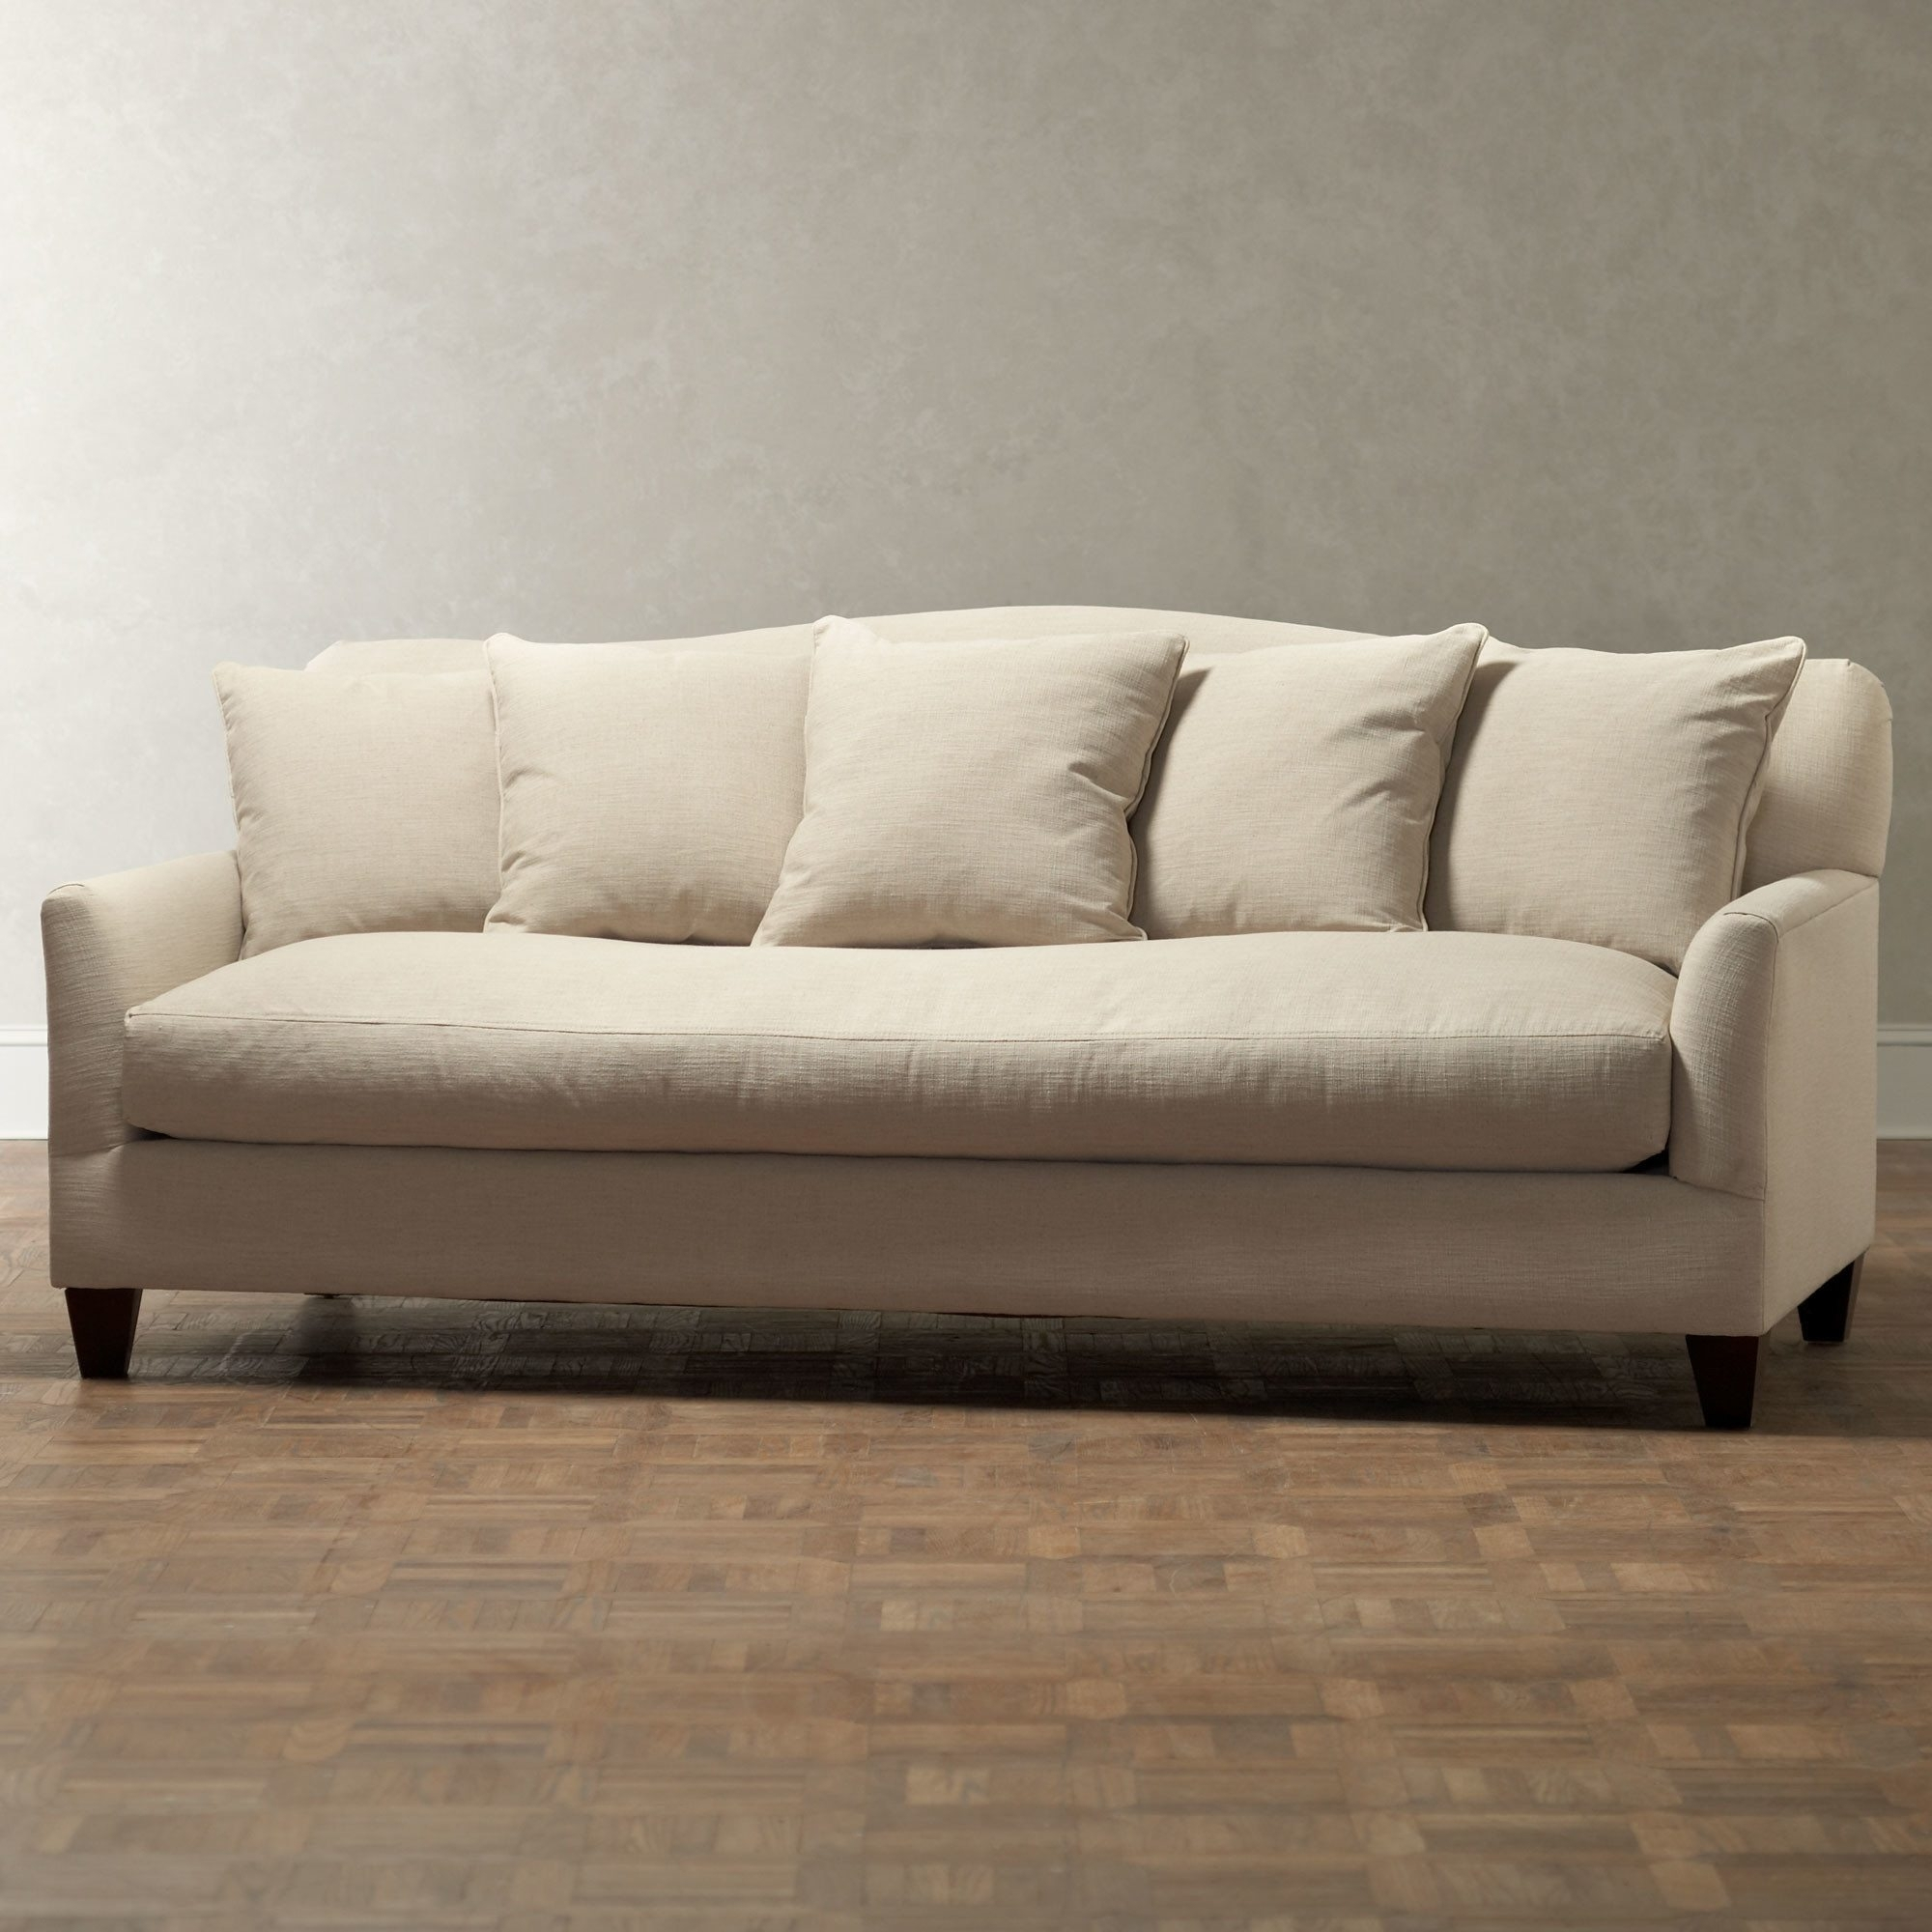 Old Fashioned Sofas Sofa Ideas